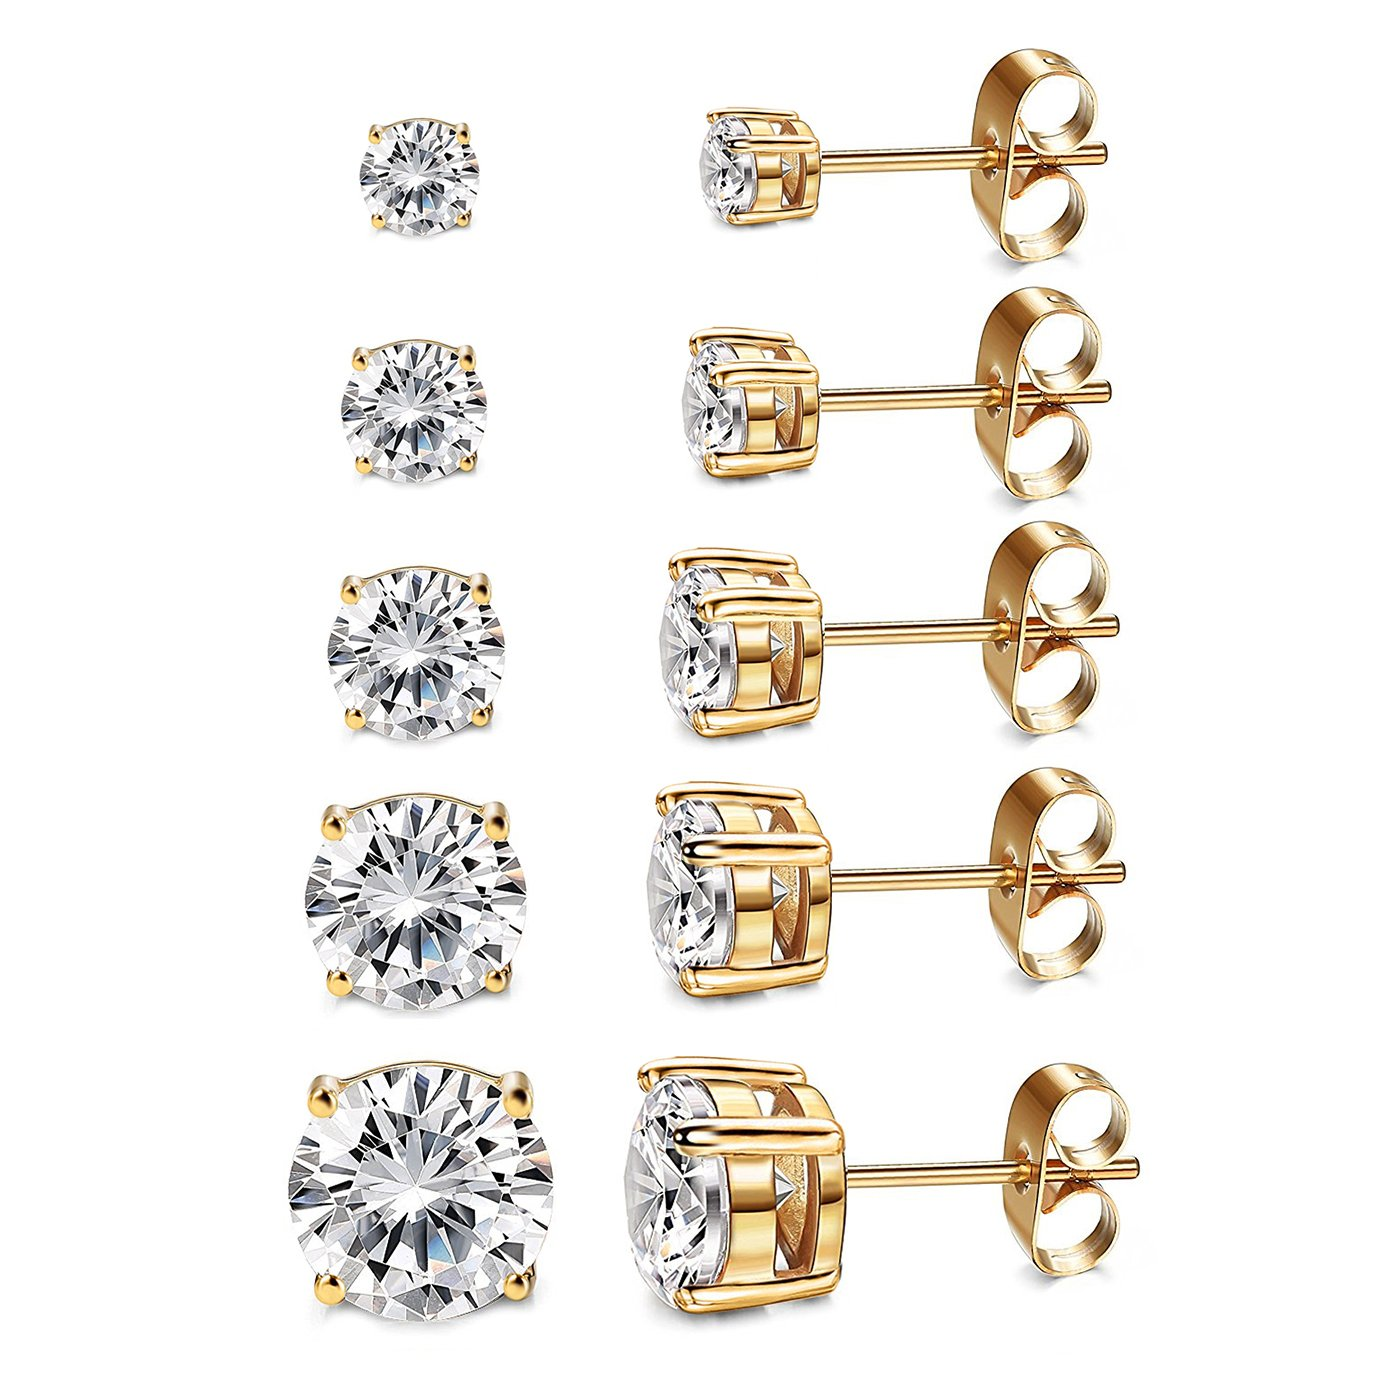 Women's 18 K Gold Plated Cz Stud Earrings Simulated Diamond Round Cubic Zirconia Ear Stud Set(5 Pairs by Kainier